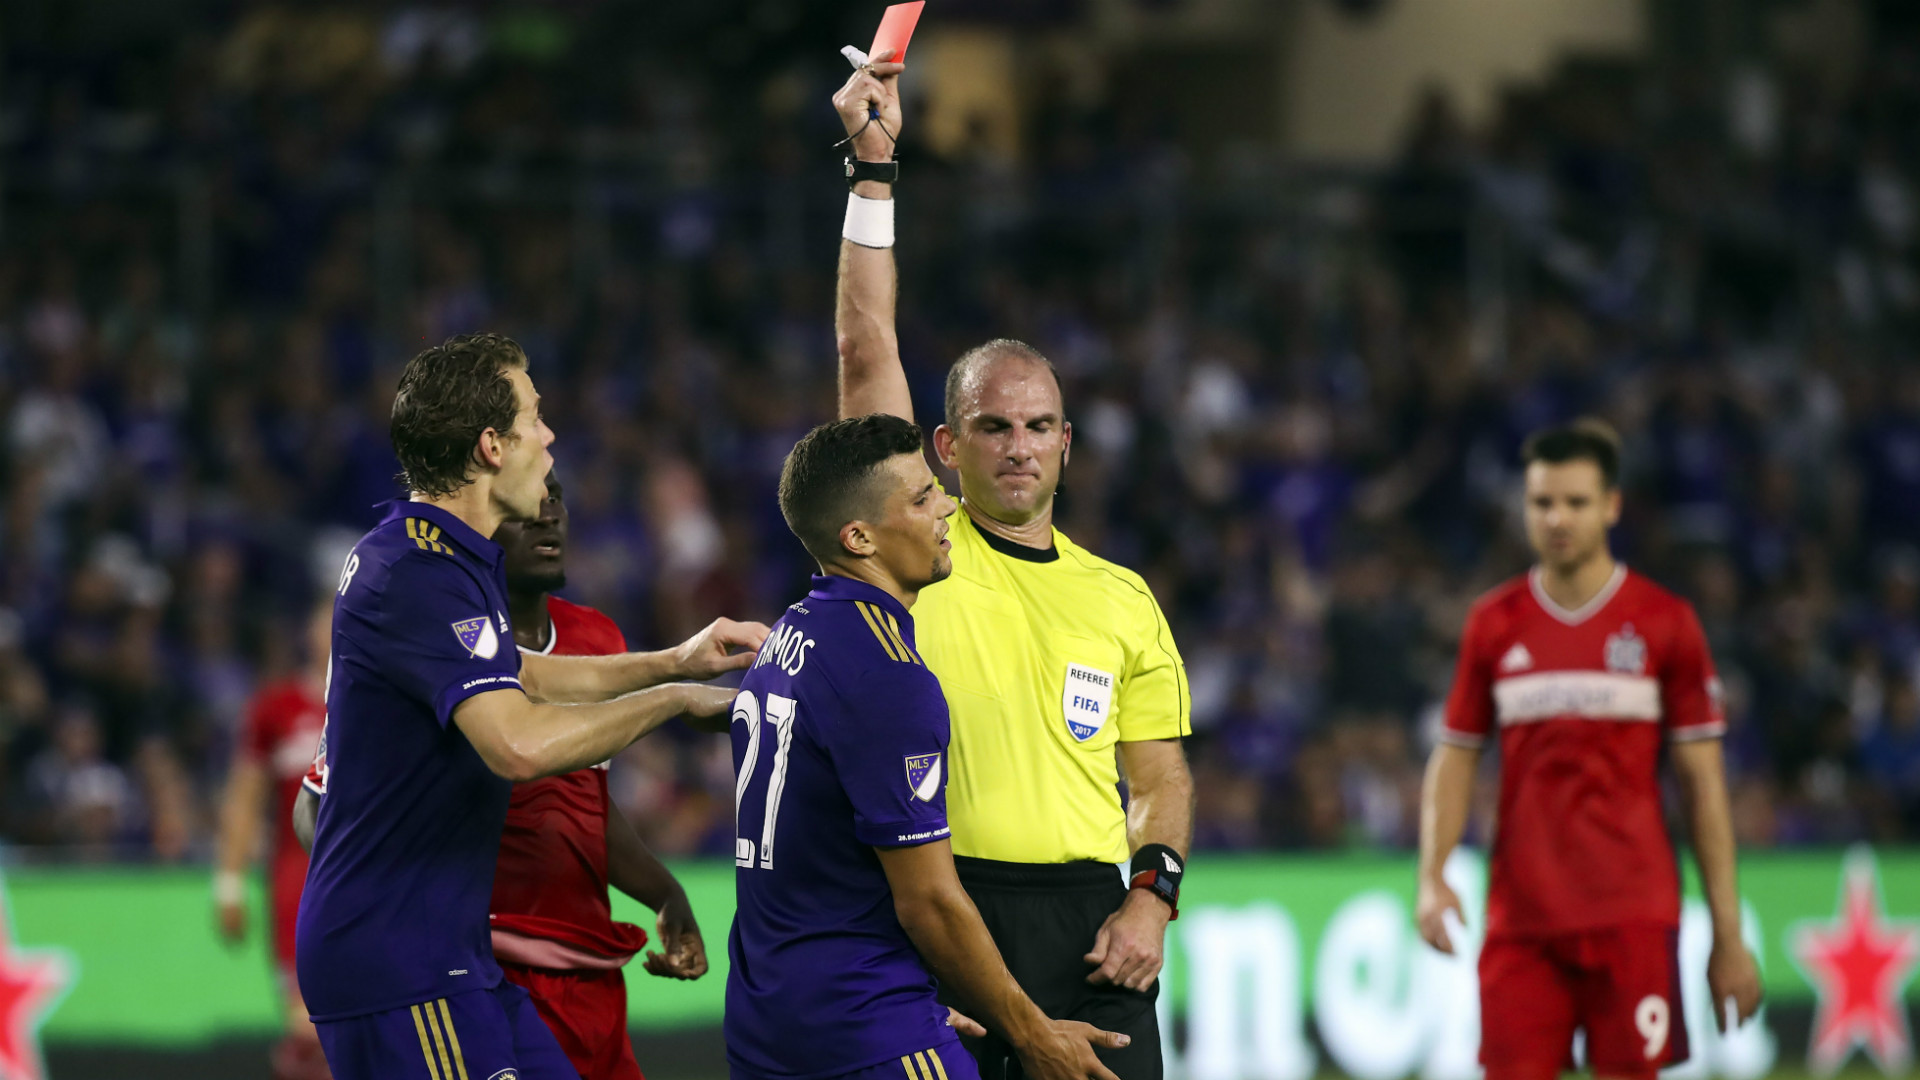 Rafael Ramos Orlando City Referee Ted Unkel